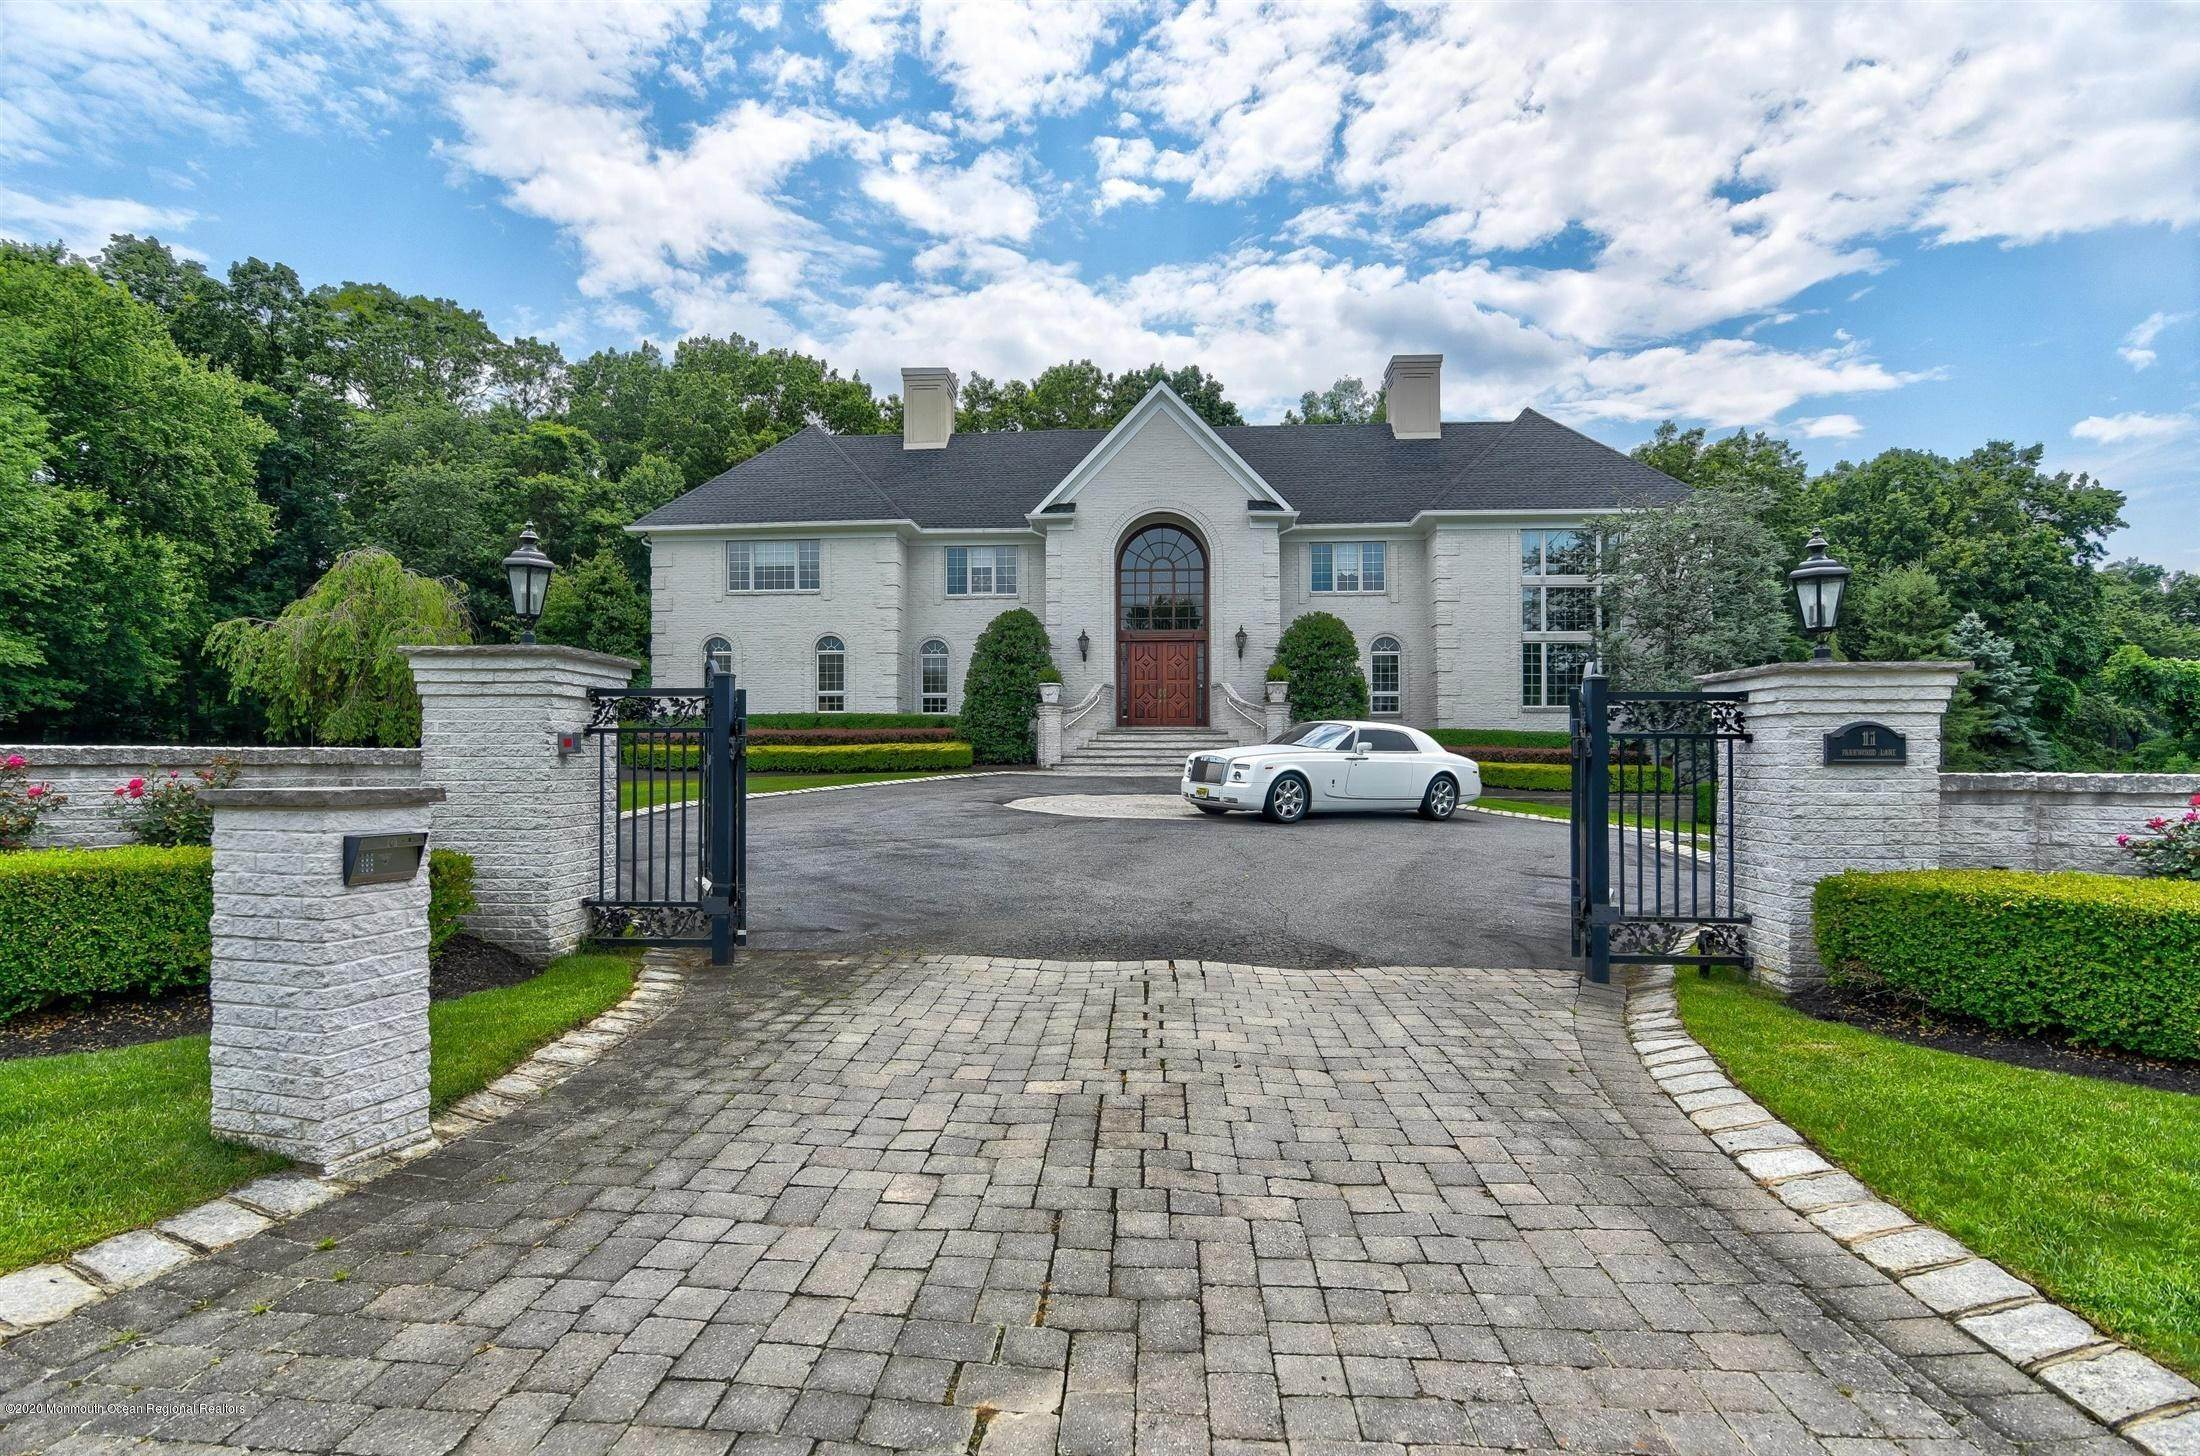 Single Family Homes for Sale at 11 Parkwood Lane Colts Neck, New Jersey 07722 United States